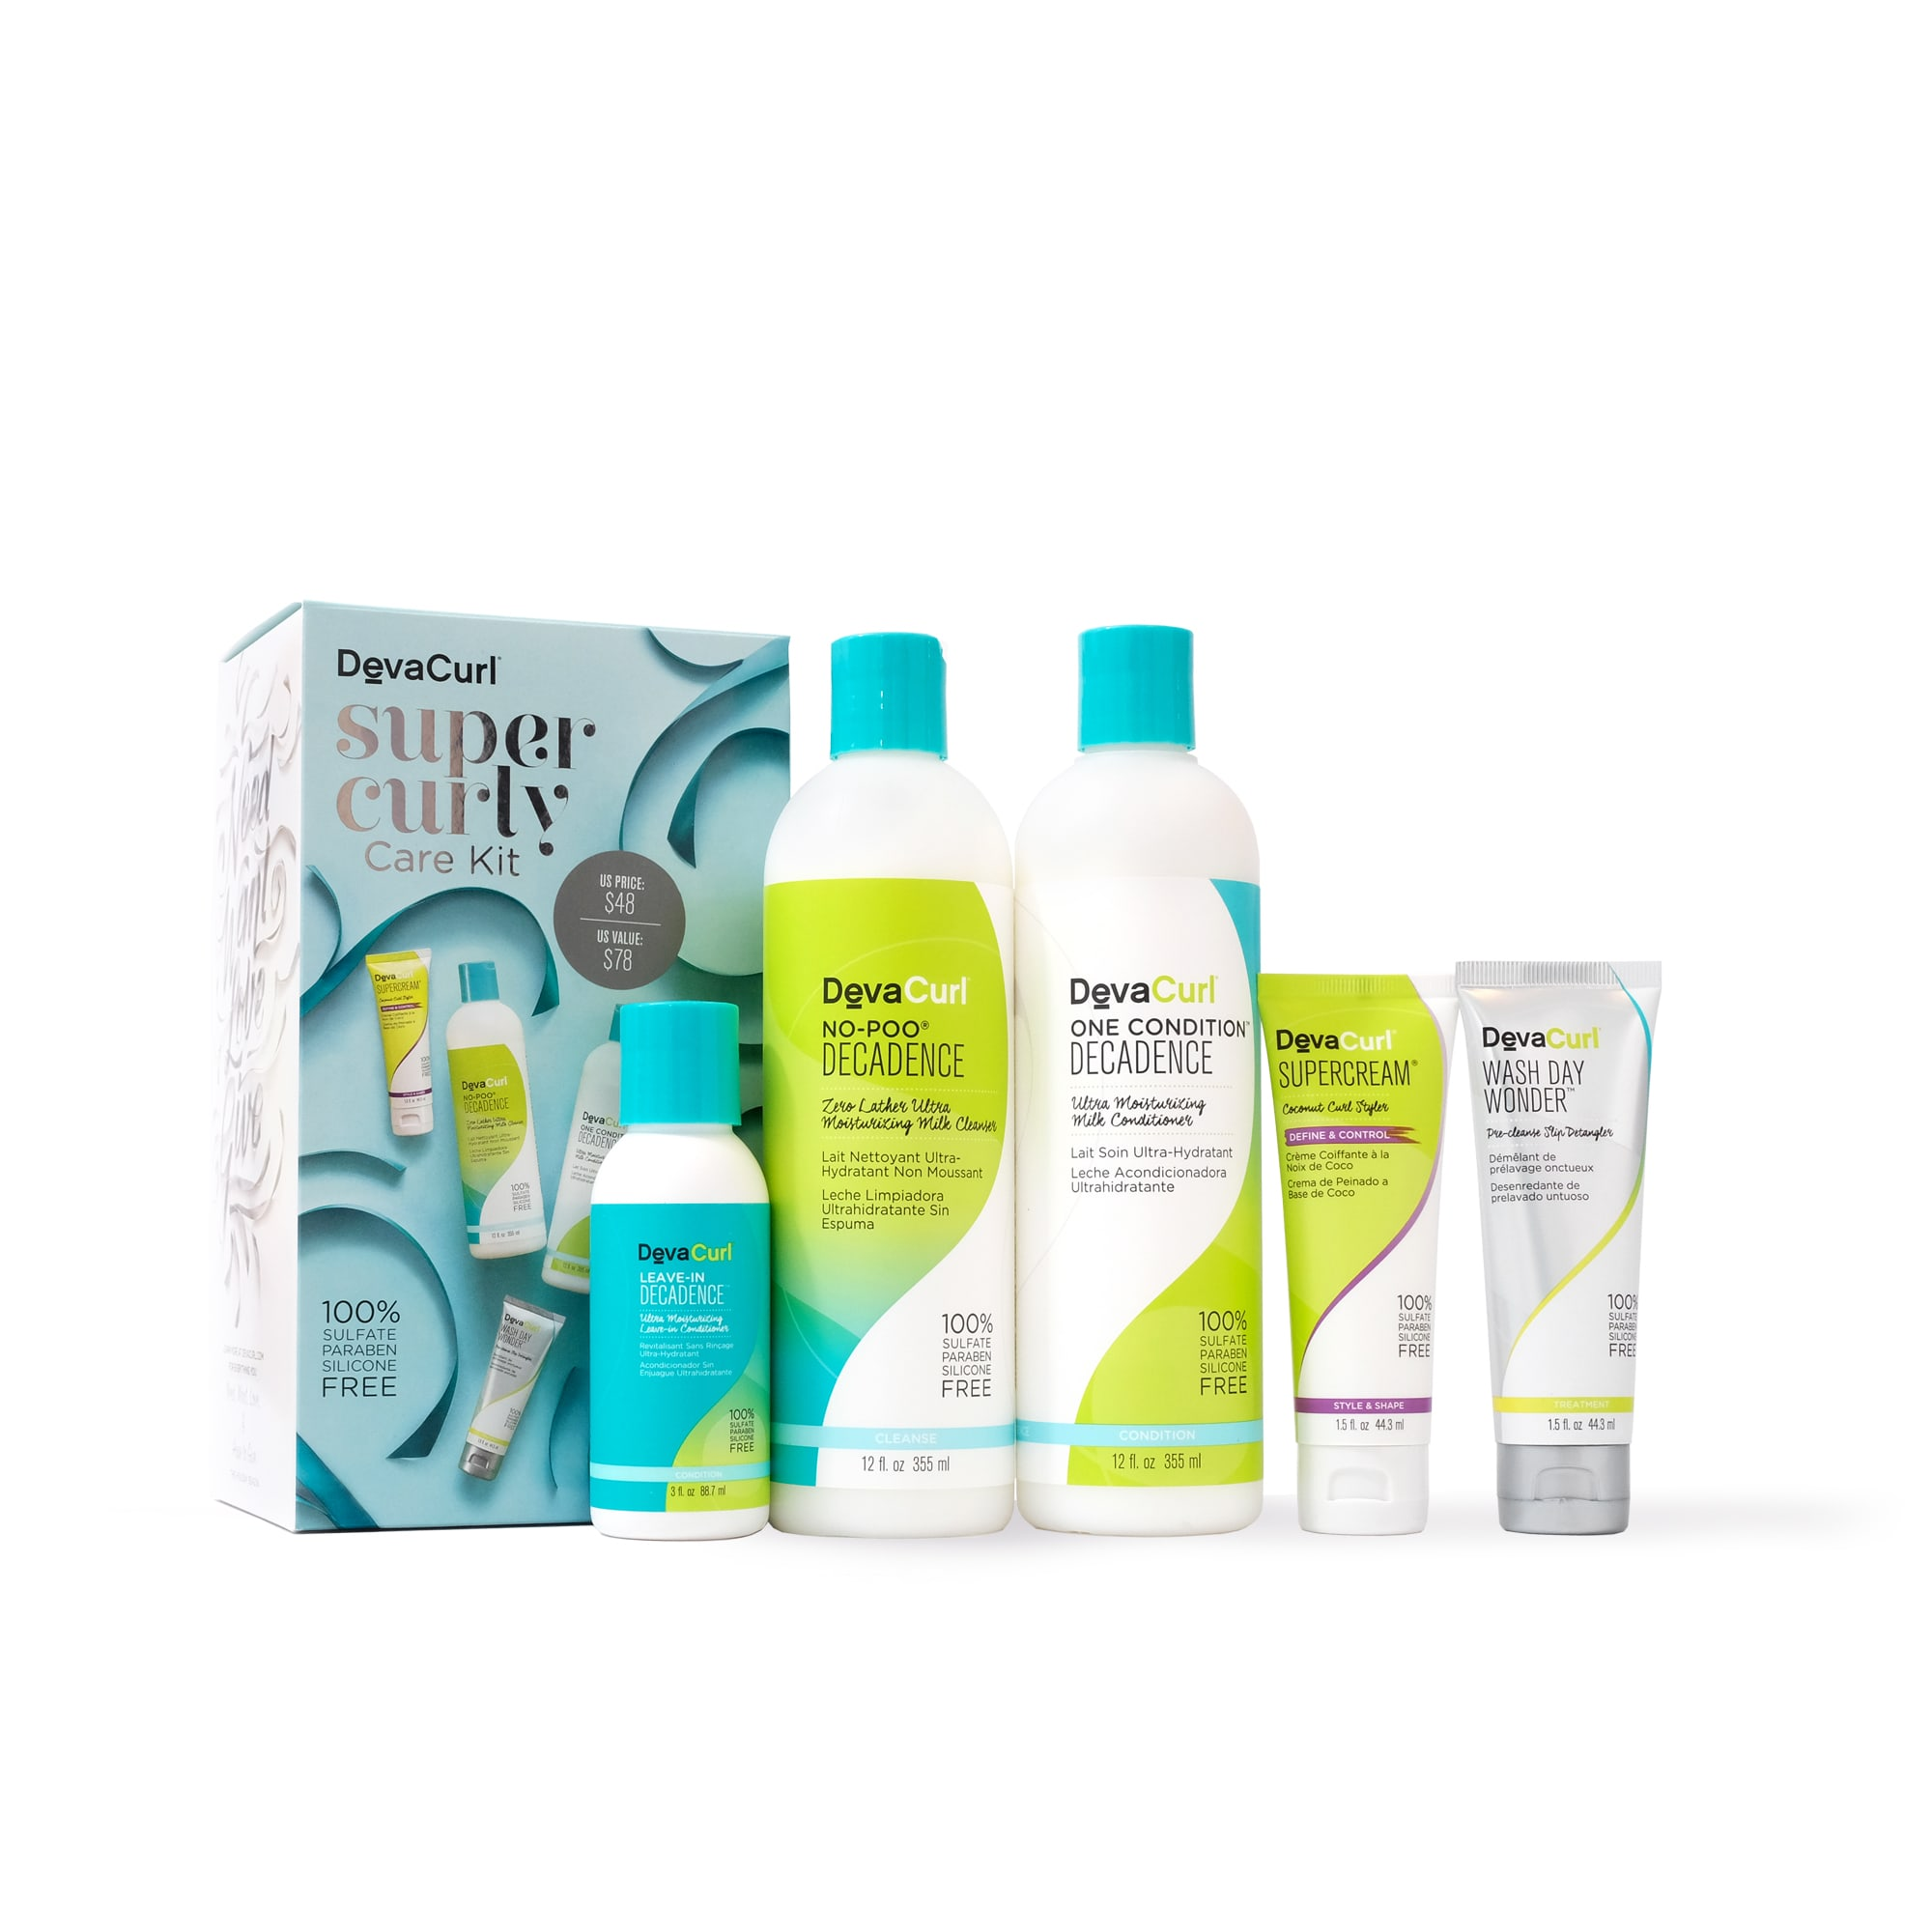 super curly care kit with bottles outside the box